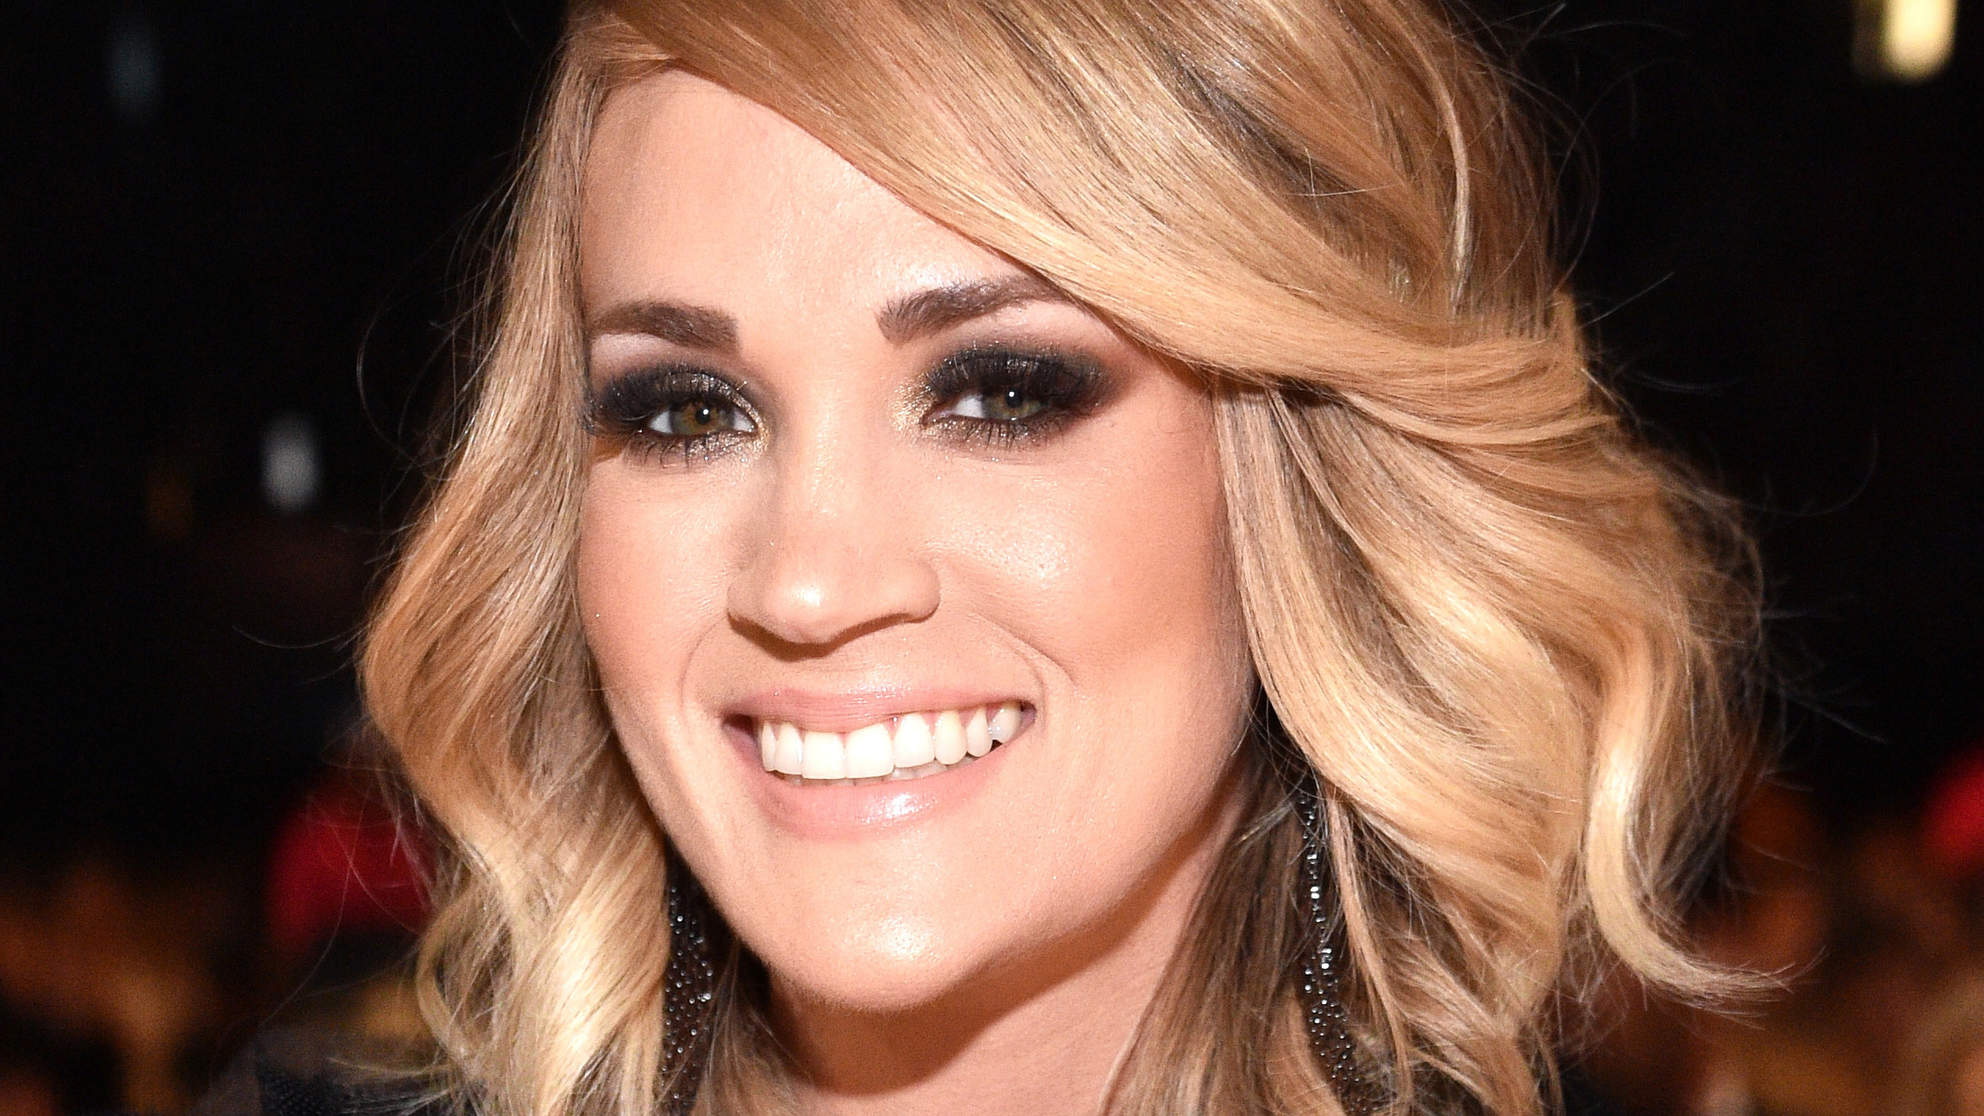 Clone of Clone of Carrie Underwood Shares a New Selfie Post-Fall, and Her Fans Couldn't Be More Supportive